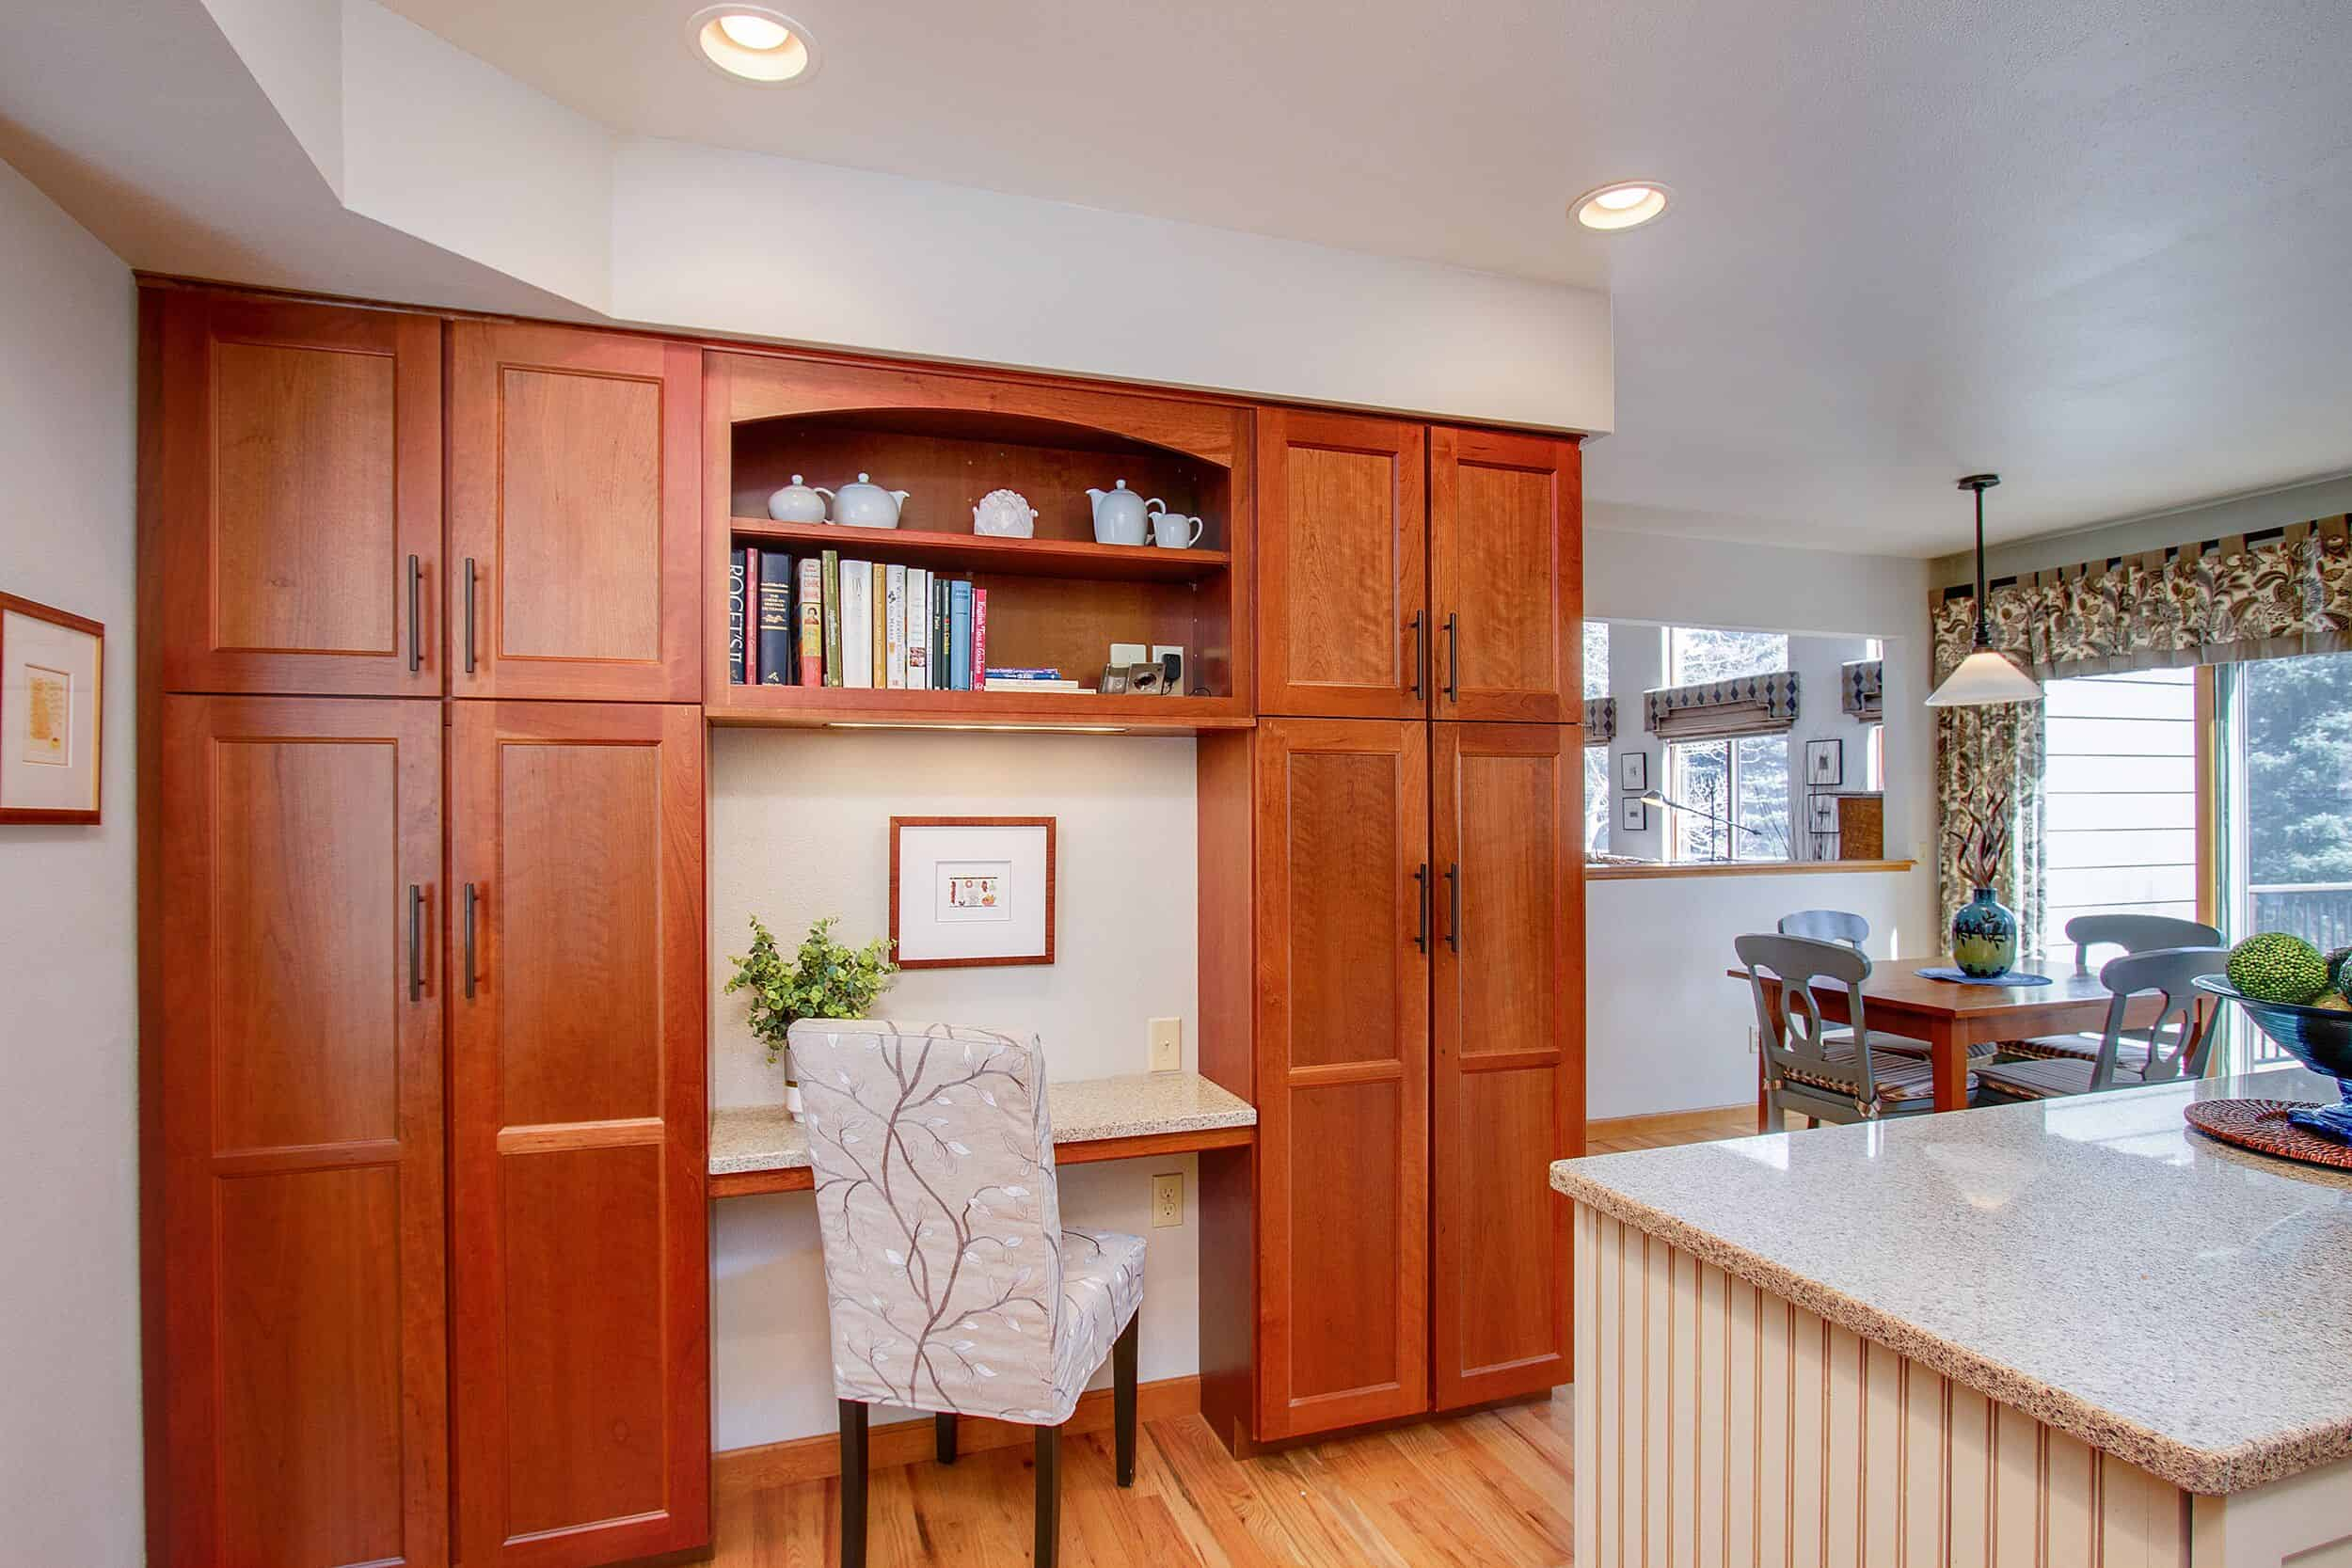 Planning Desk and Pantry